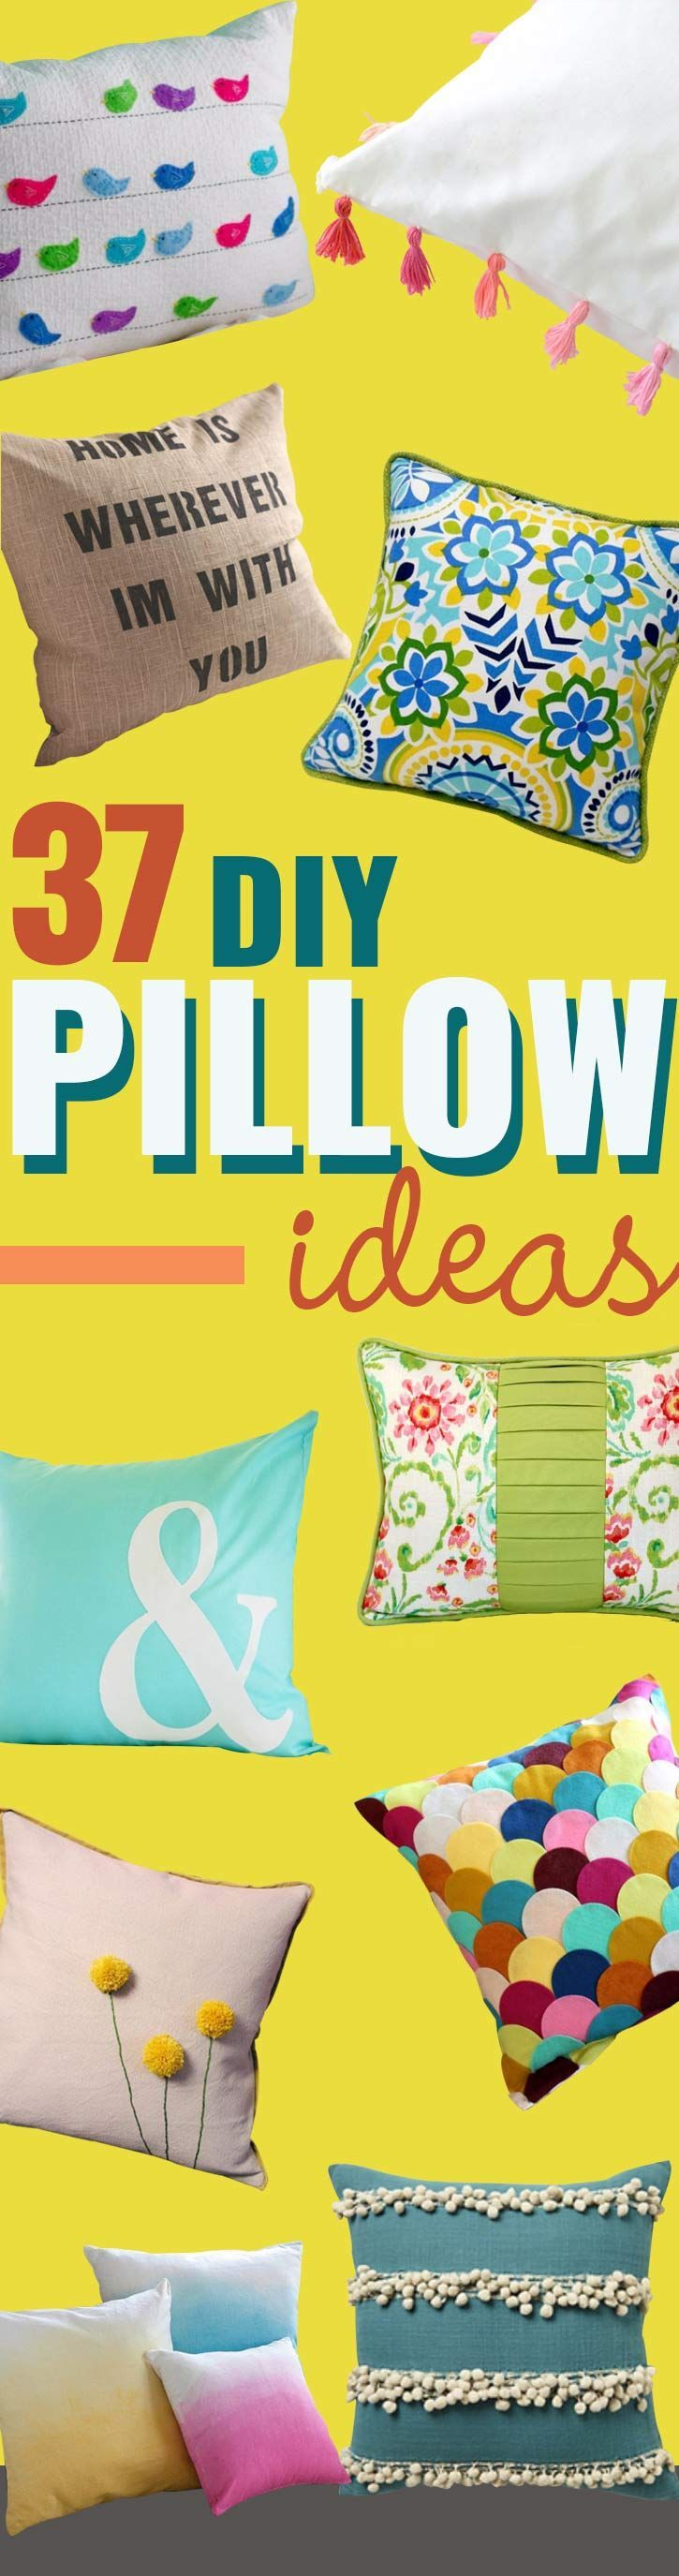 DIY Pillows and Creative Pillow Projects - Decorative Cases and Covers, Throw Pi...